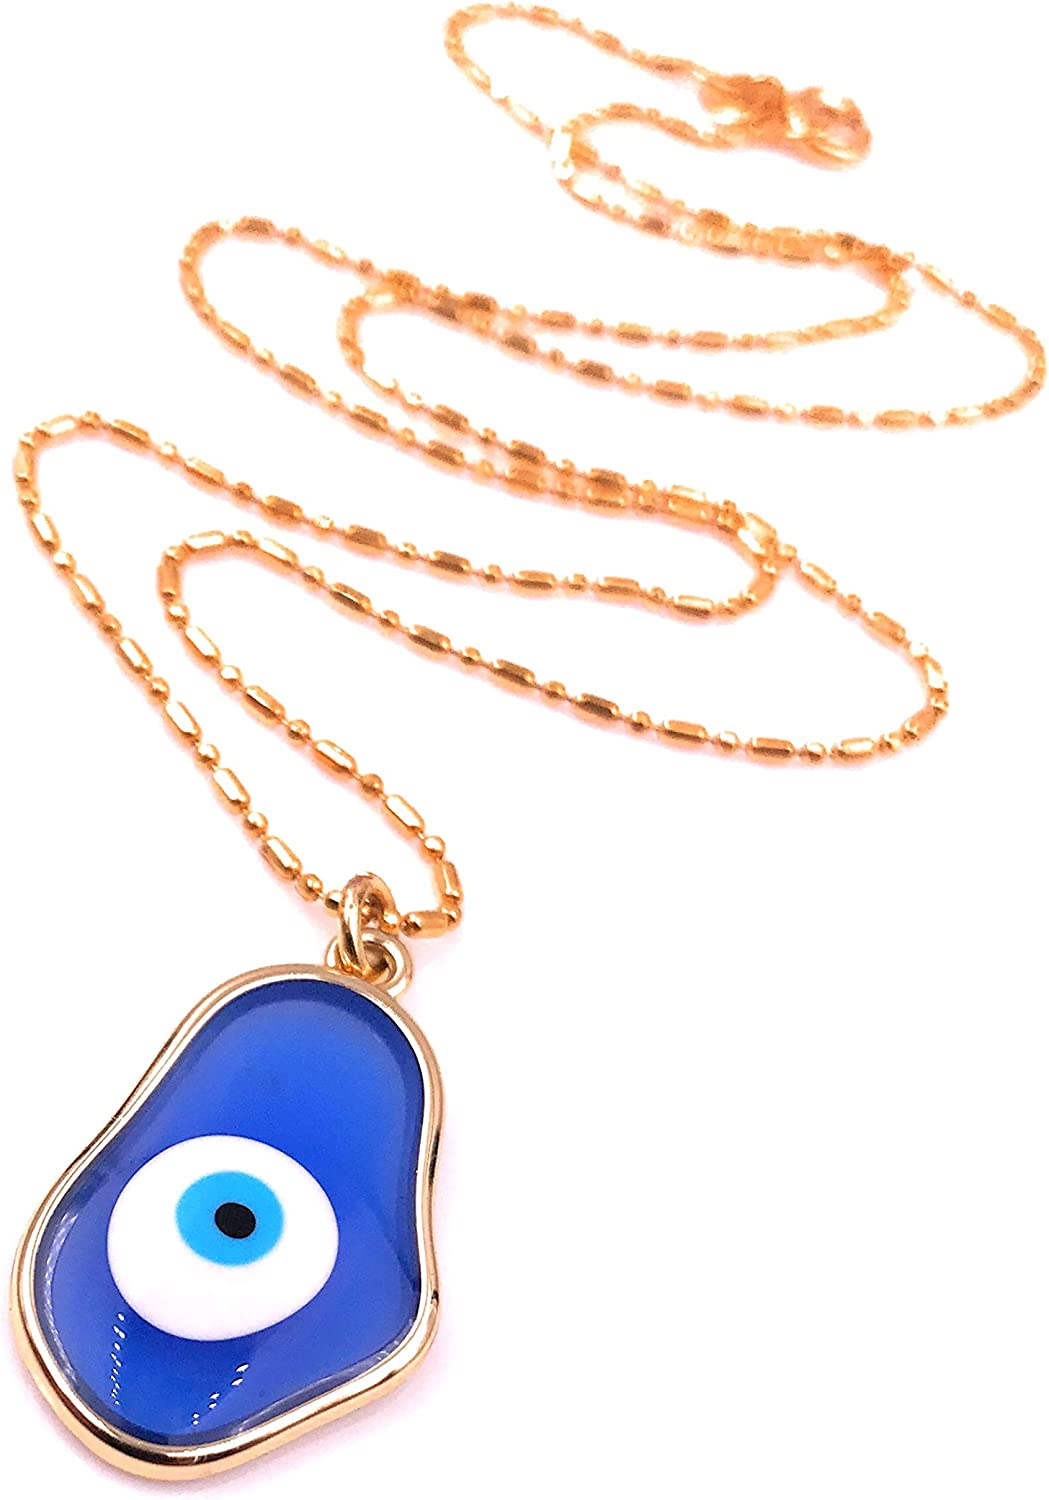 Mava Art Evil Eye Blue Glass Pendant Necklace for Women 18K Gold Plated Chain Protection Jewelry